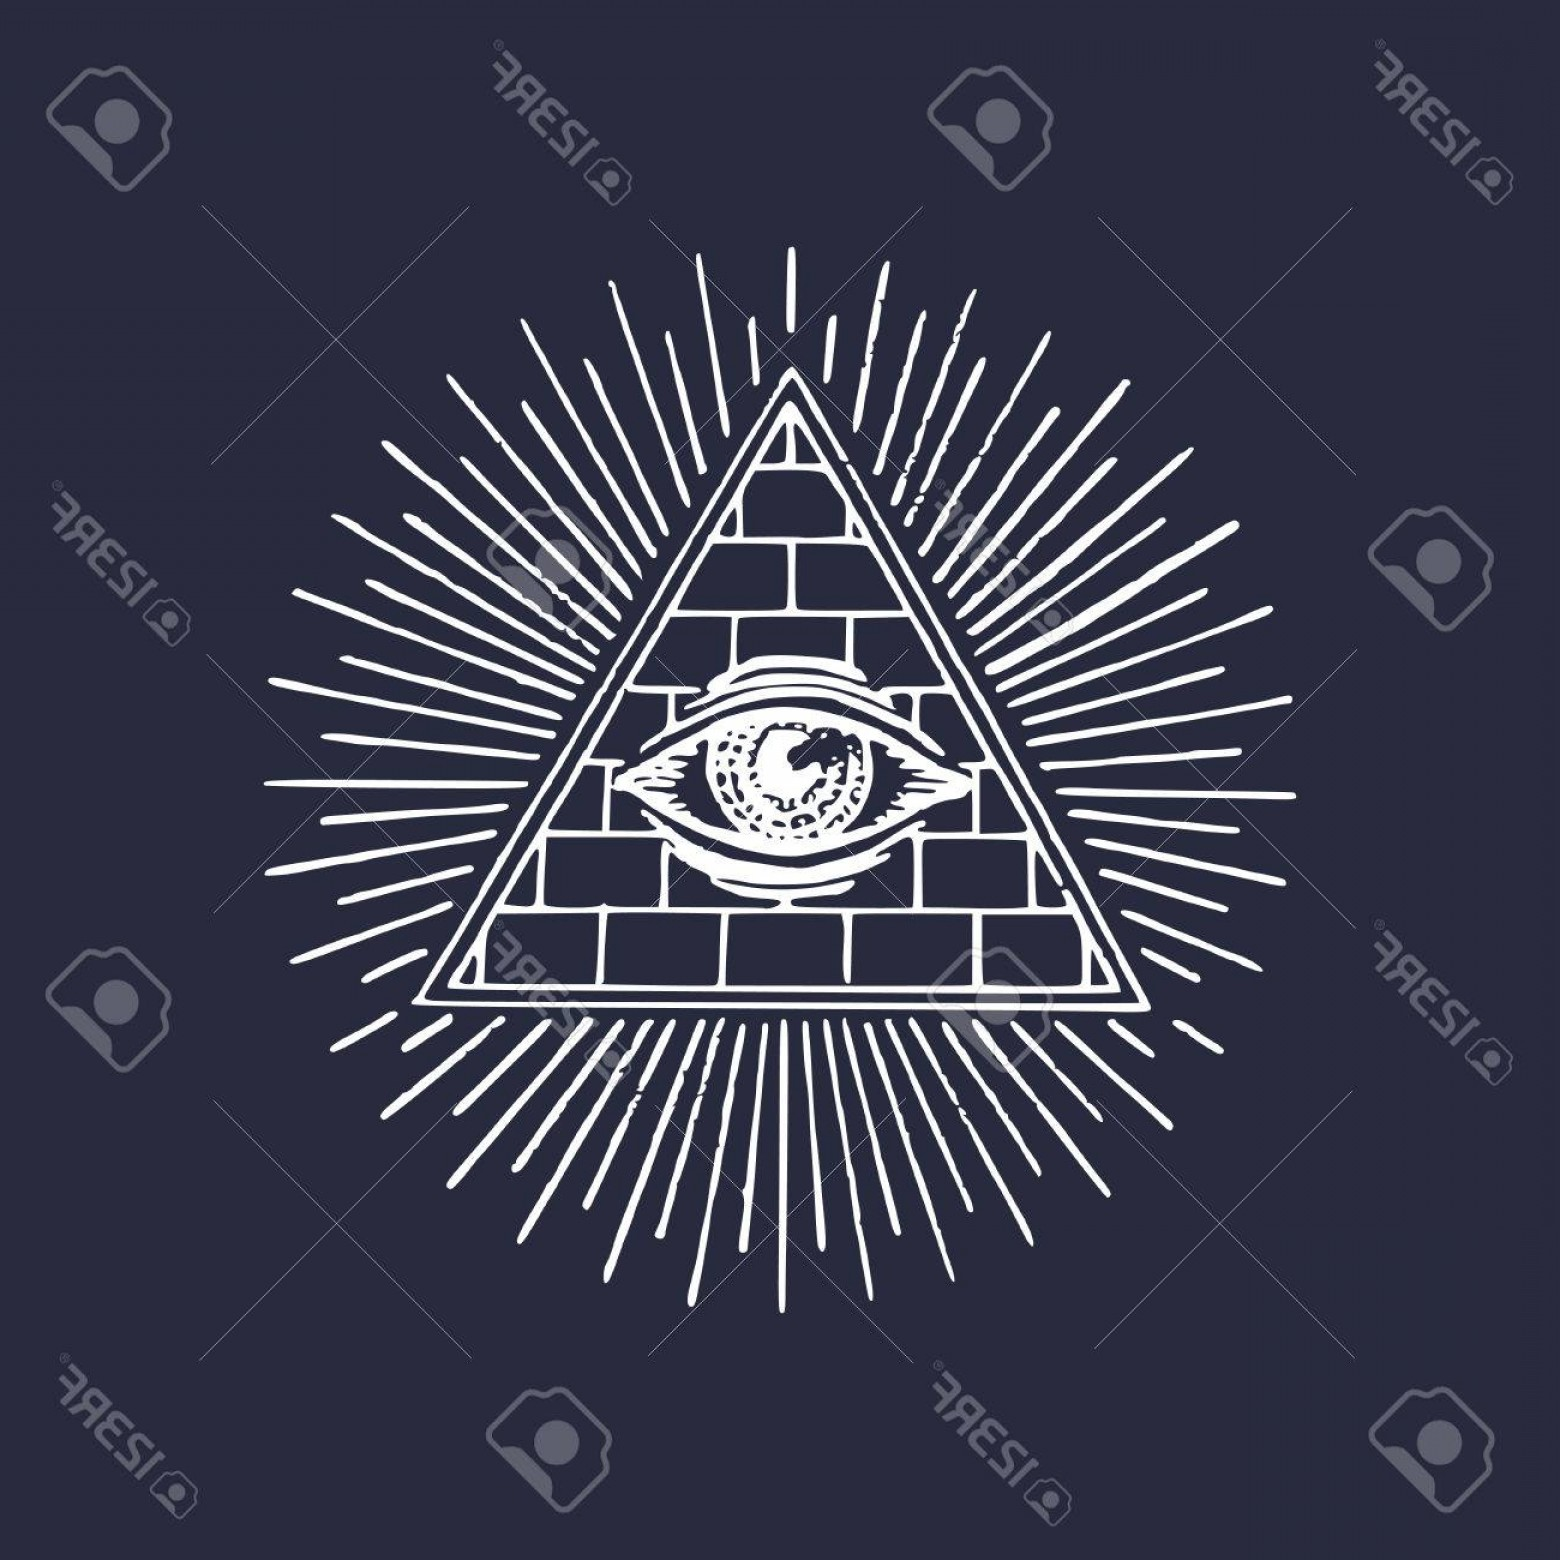 Pyramid With Eye Of Providence Vector: Photostock Vector Freemasonry Pyramid All Seeing Eye Engraving Masonic Logo Vector Eye Of Providence Illustration Symb